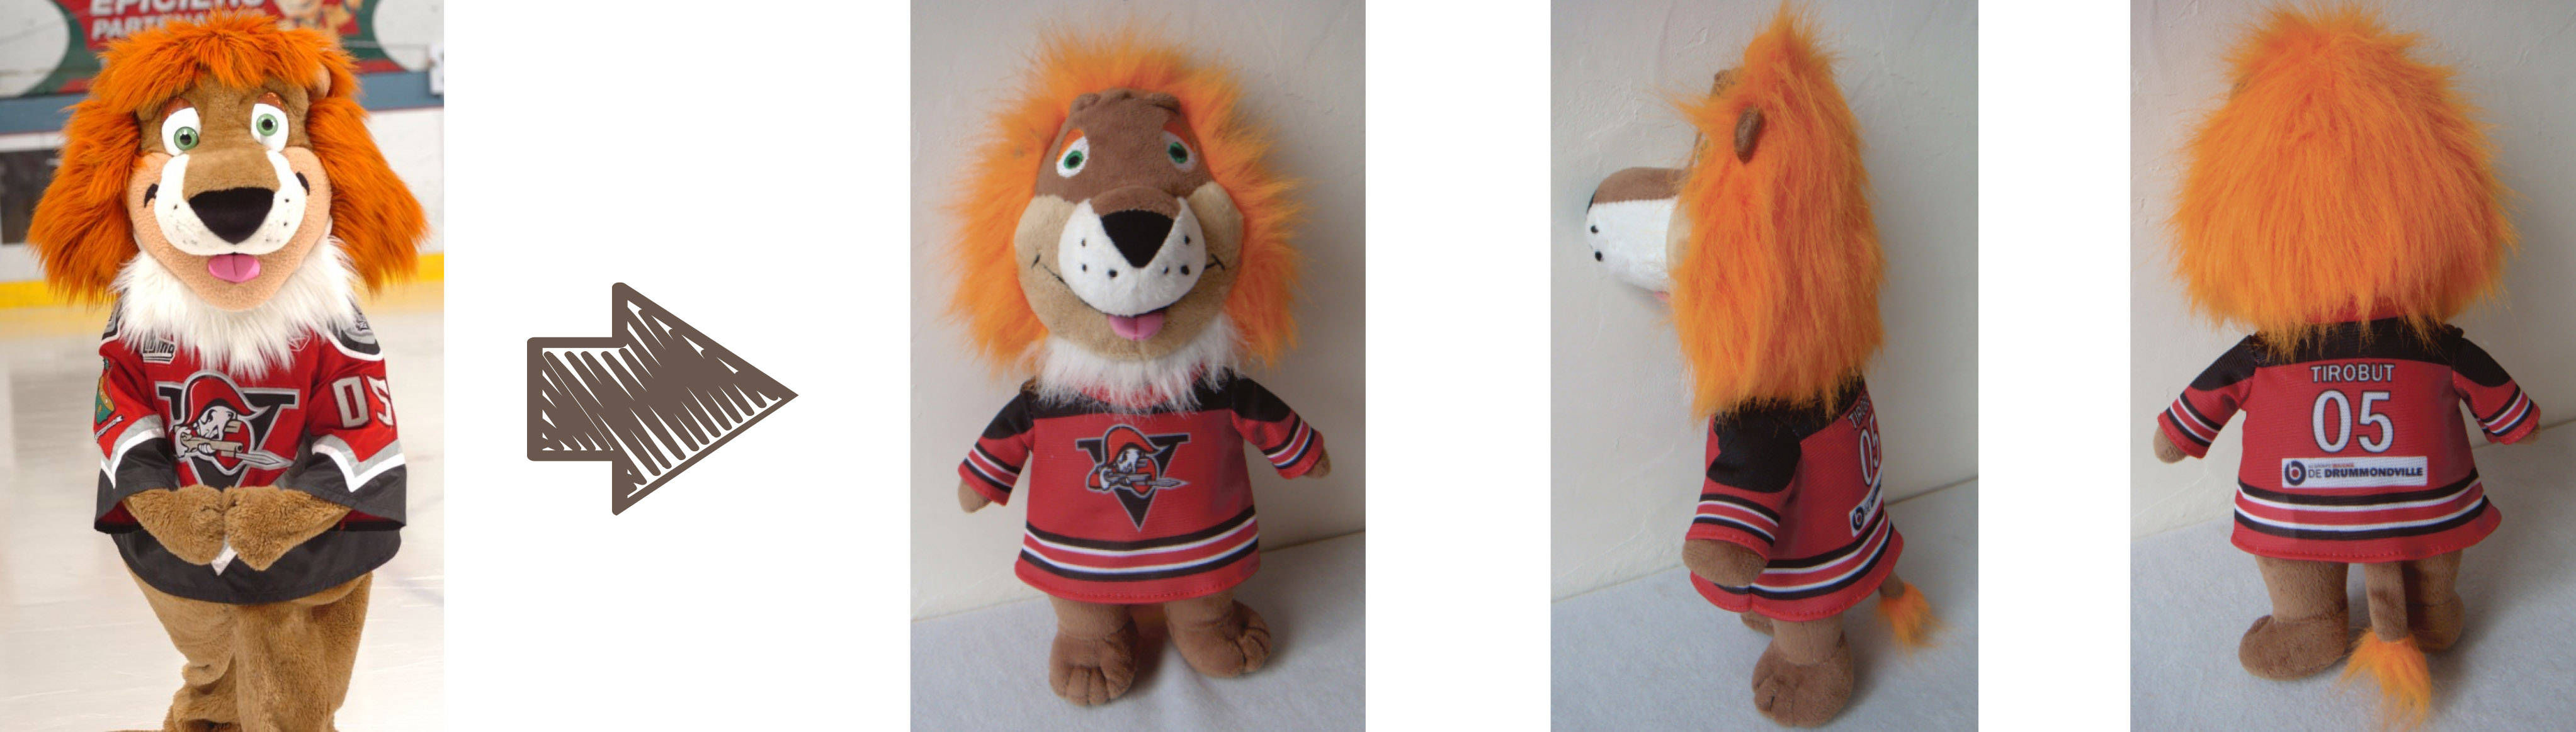 Drummondville Voltigeurs mascot stuffed animal